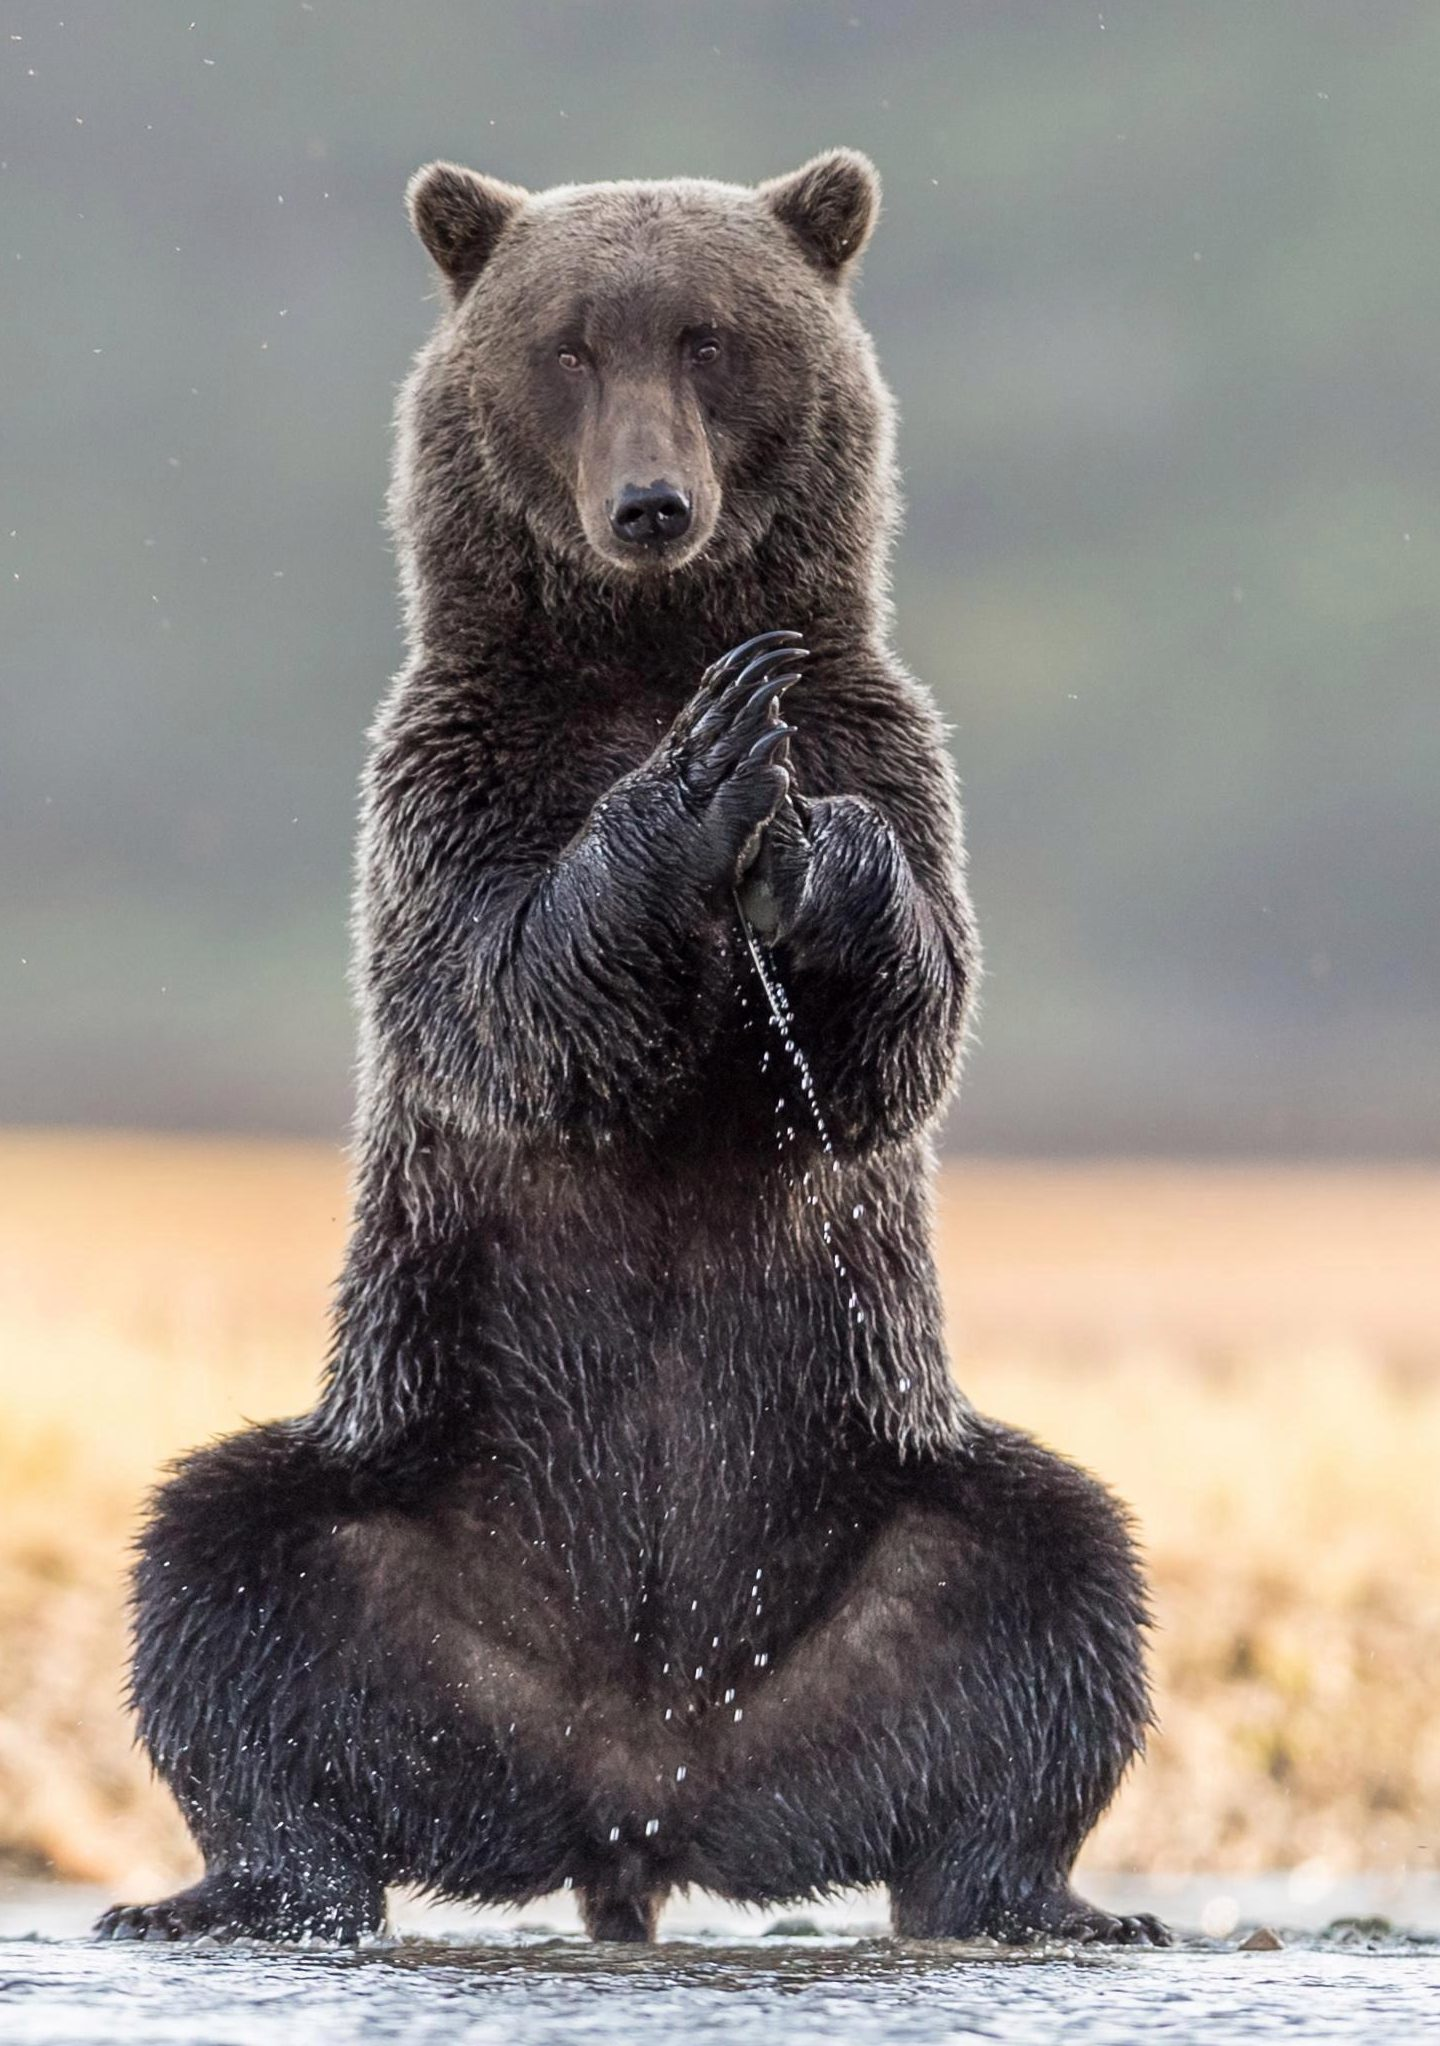 Giant Grizzly Bear Stands Out As It Practises Some Yoga Positions In Alaska